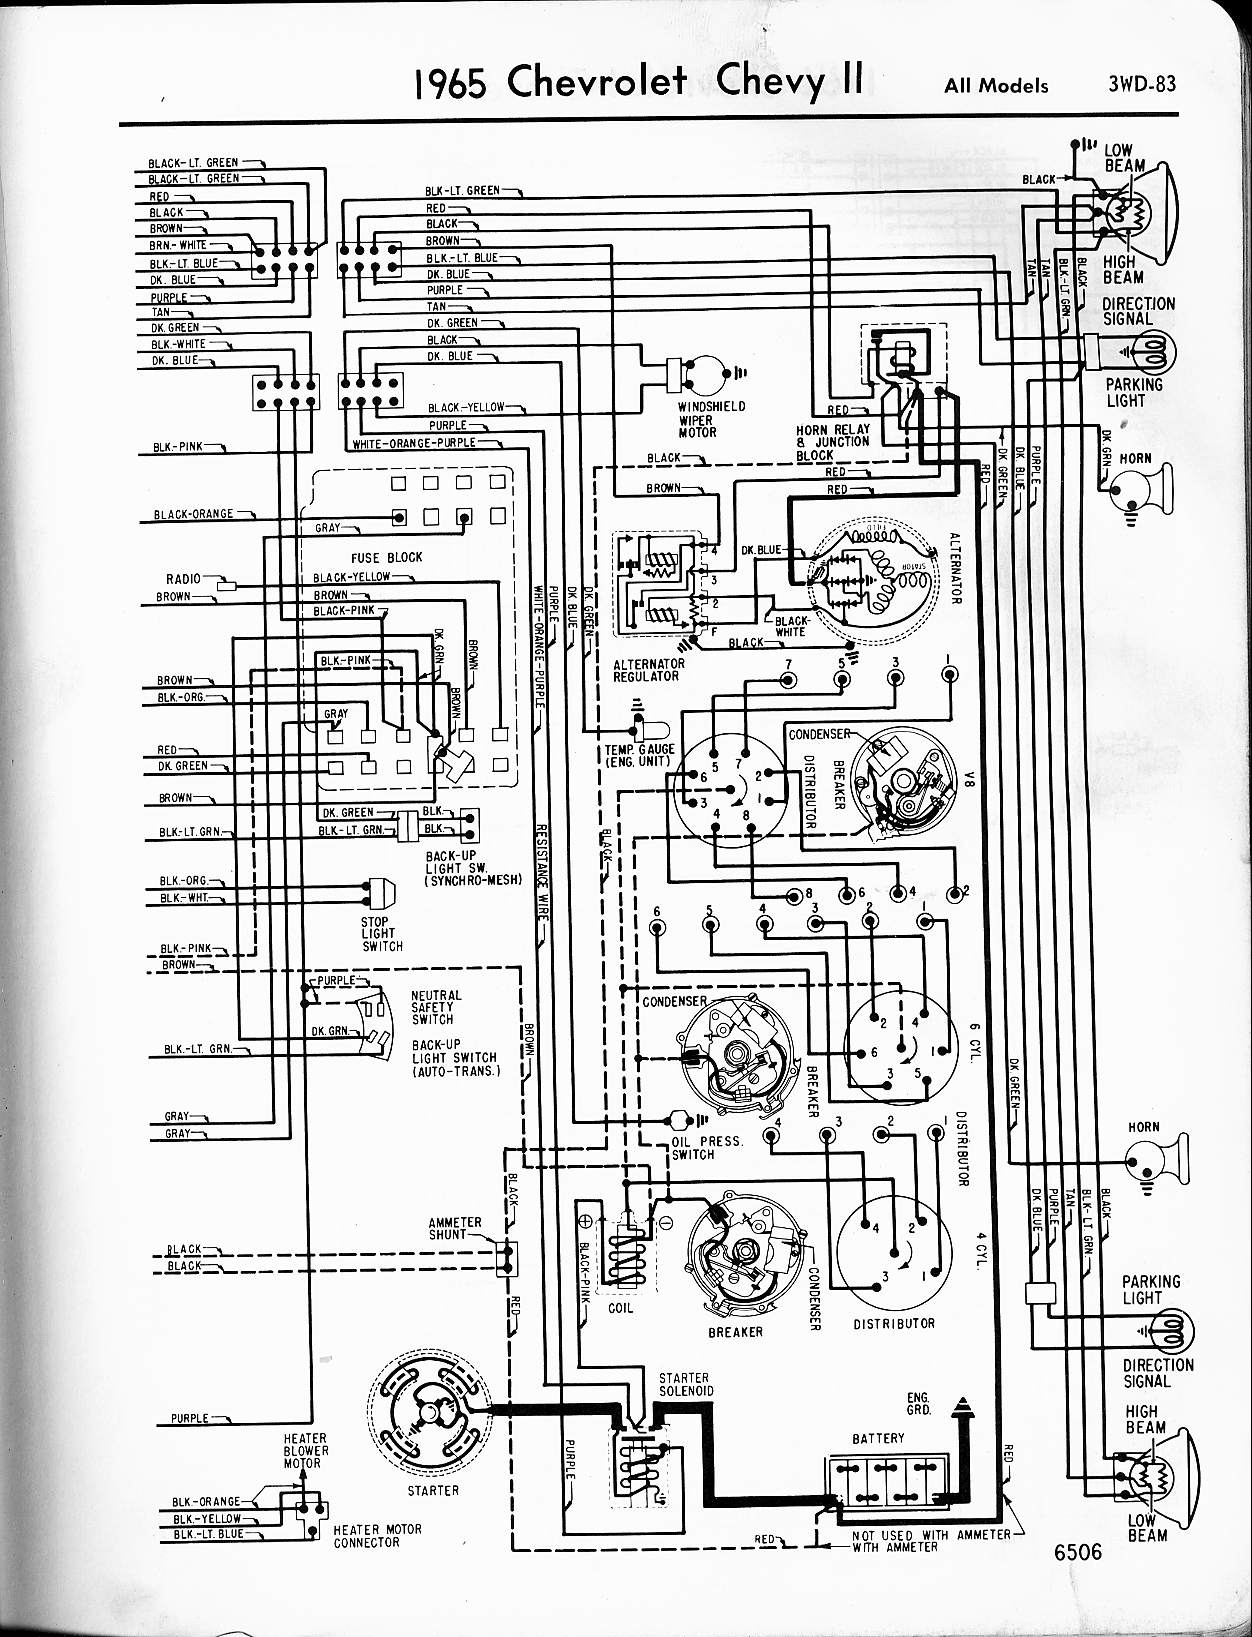 1977 Nova Wiring Diagram Schematic Diagrams 77 Corvette Detailed 1975